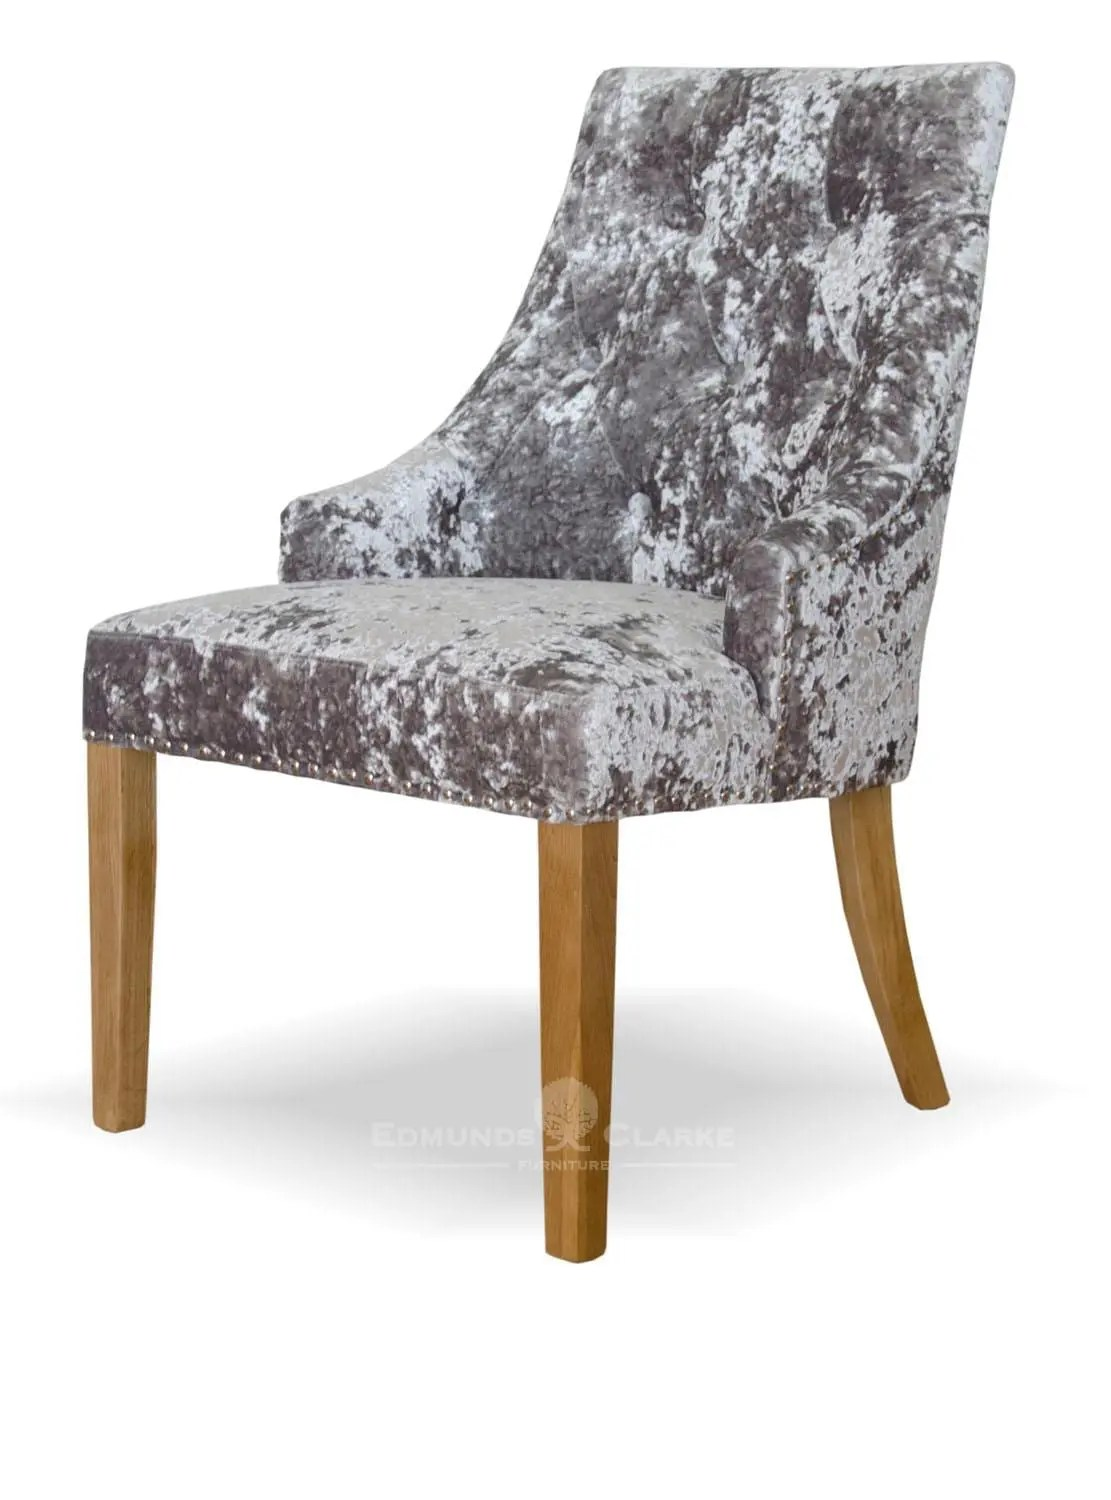 Studded Dining Chairs Bergen Silver Deep Crushed Velvet Dining Chair Edmunds Clarke Ltd